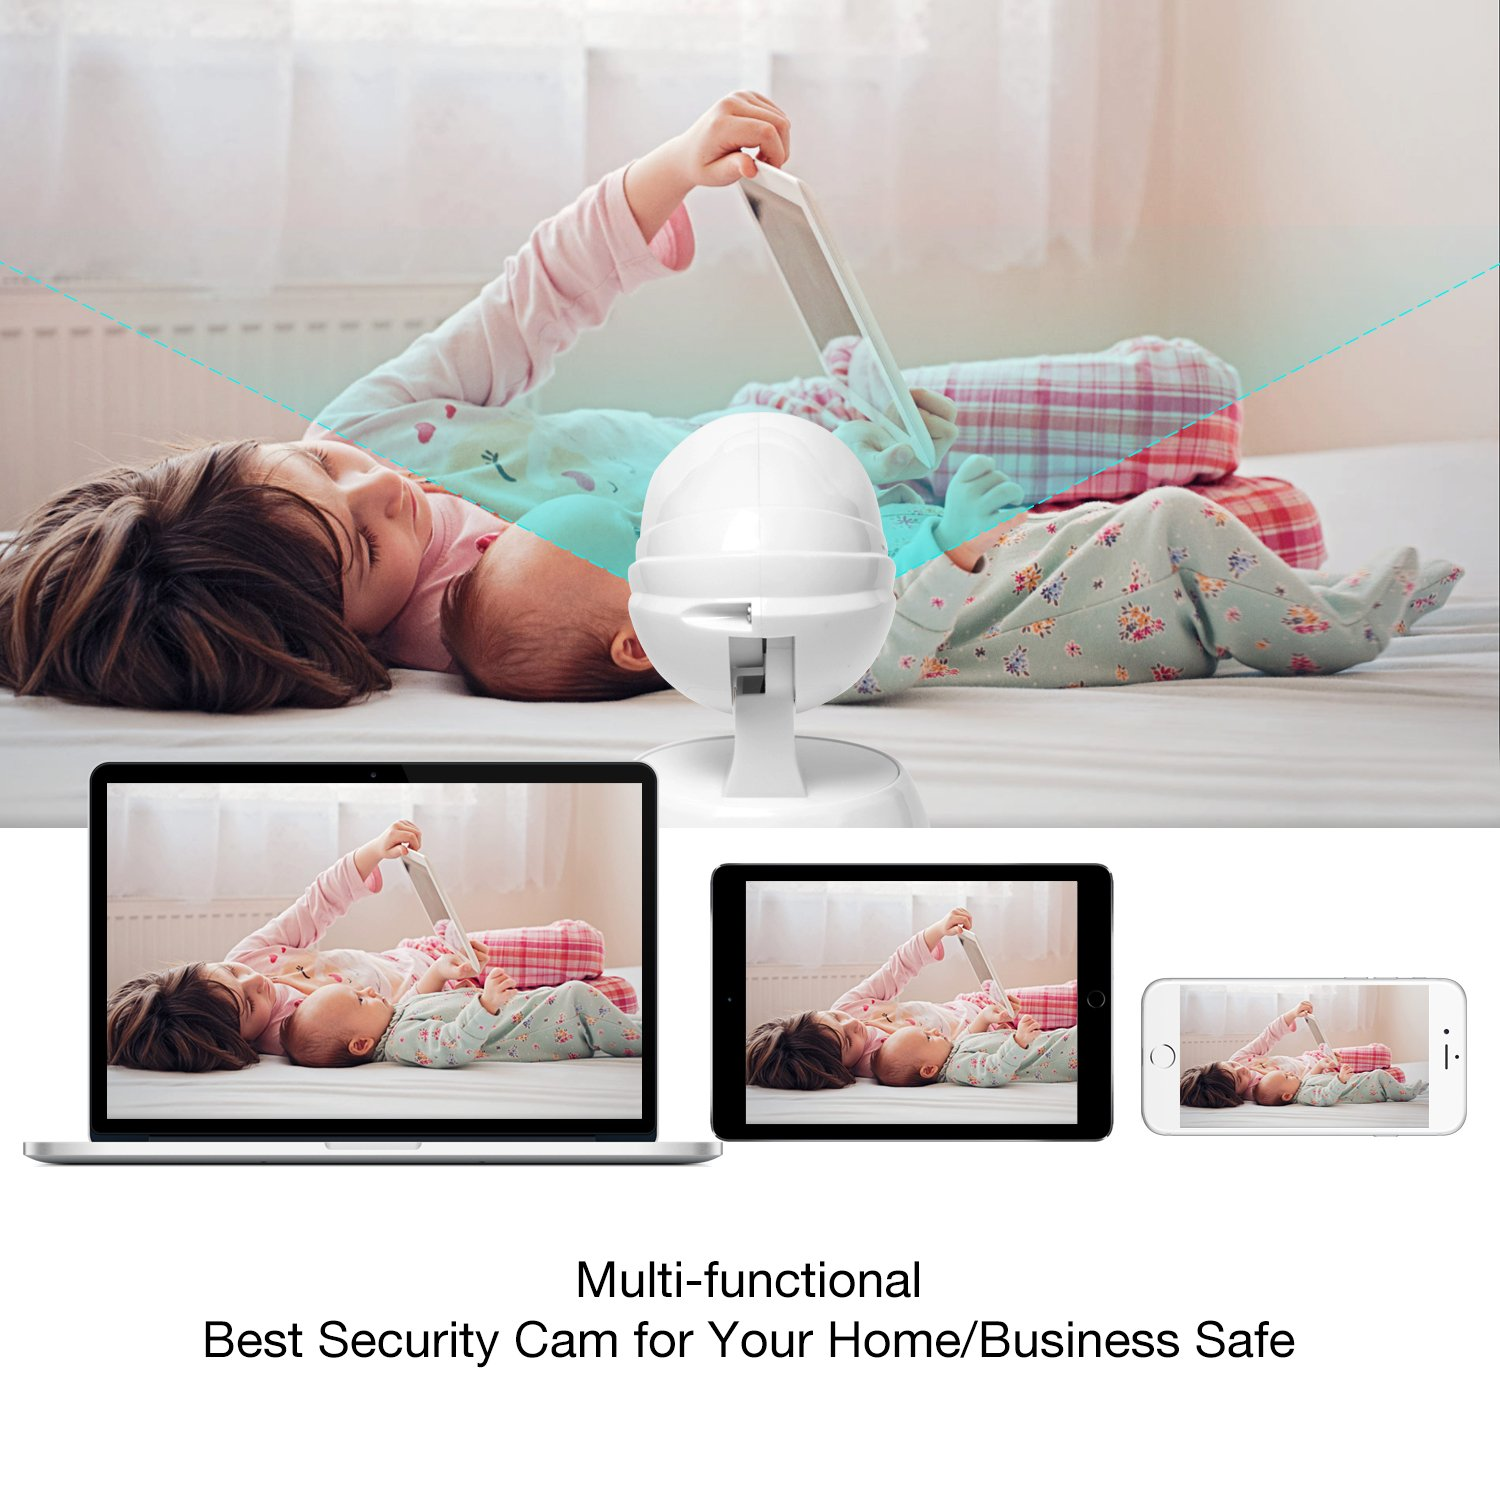 Video Baby Monitor, Conico 1080P Wireless WiFi Surveillance Camera Nanny Cam with Two Way Audio Night Vision Motion Detect Remote Viewing Pan Tilt Zoom for iPhone and Android by Conico (Image #5)